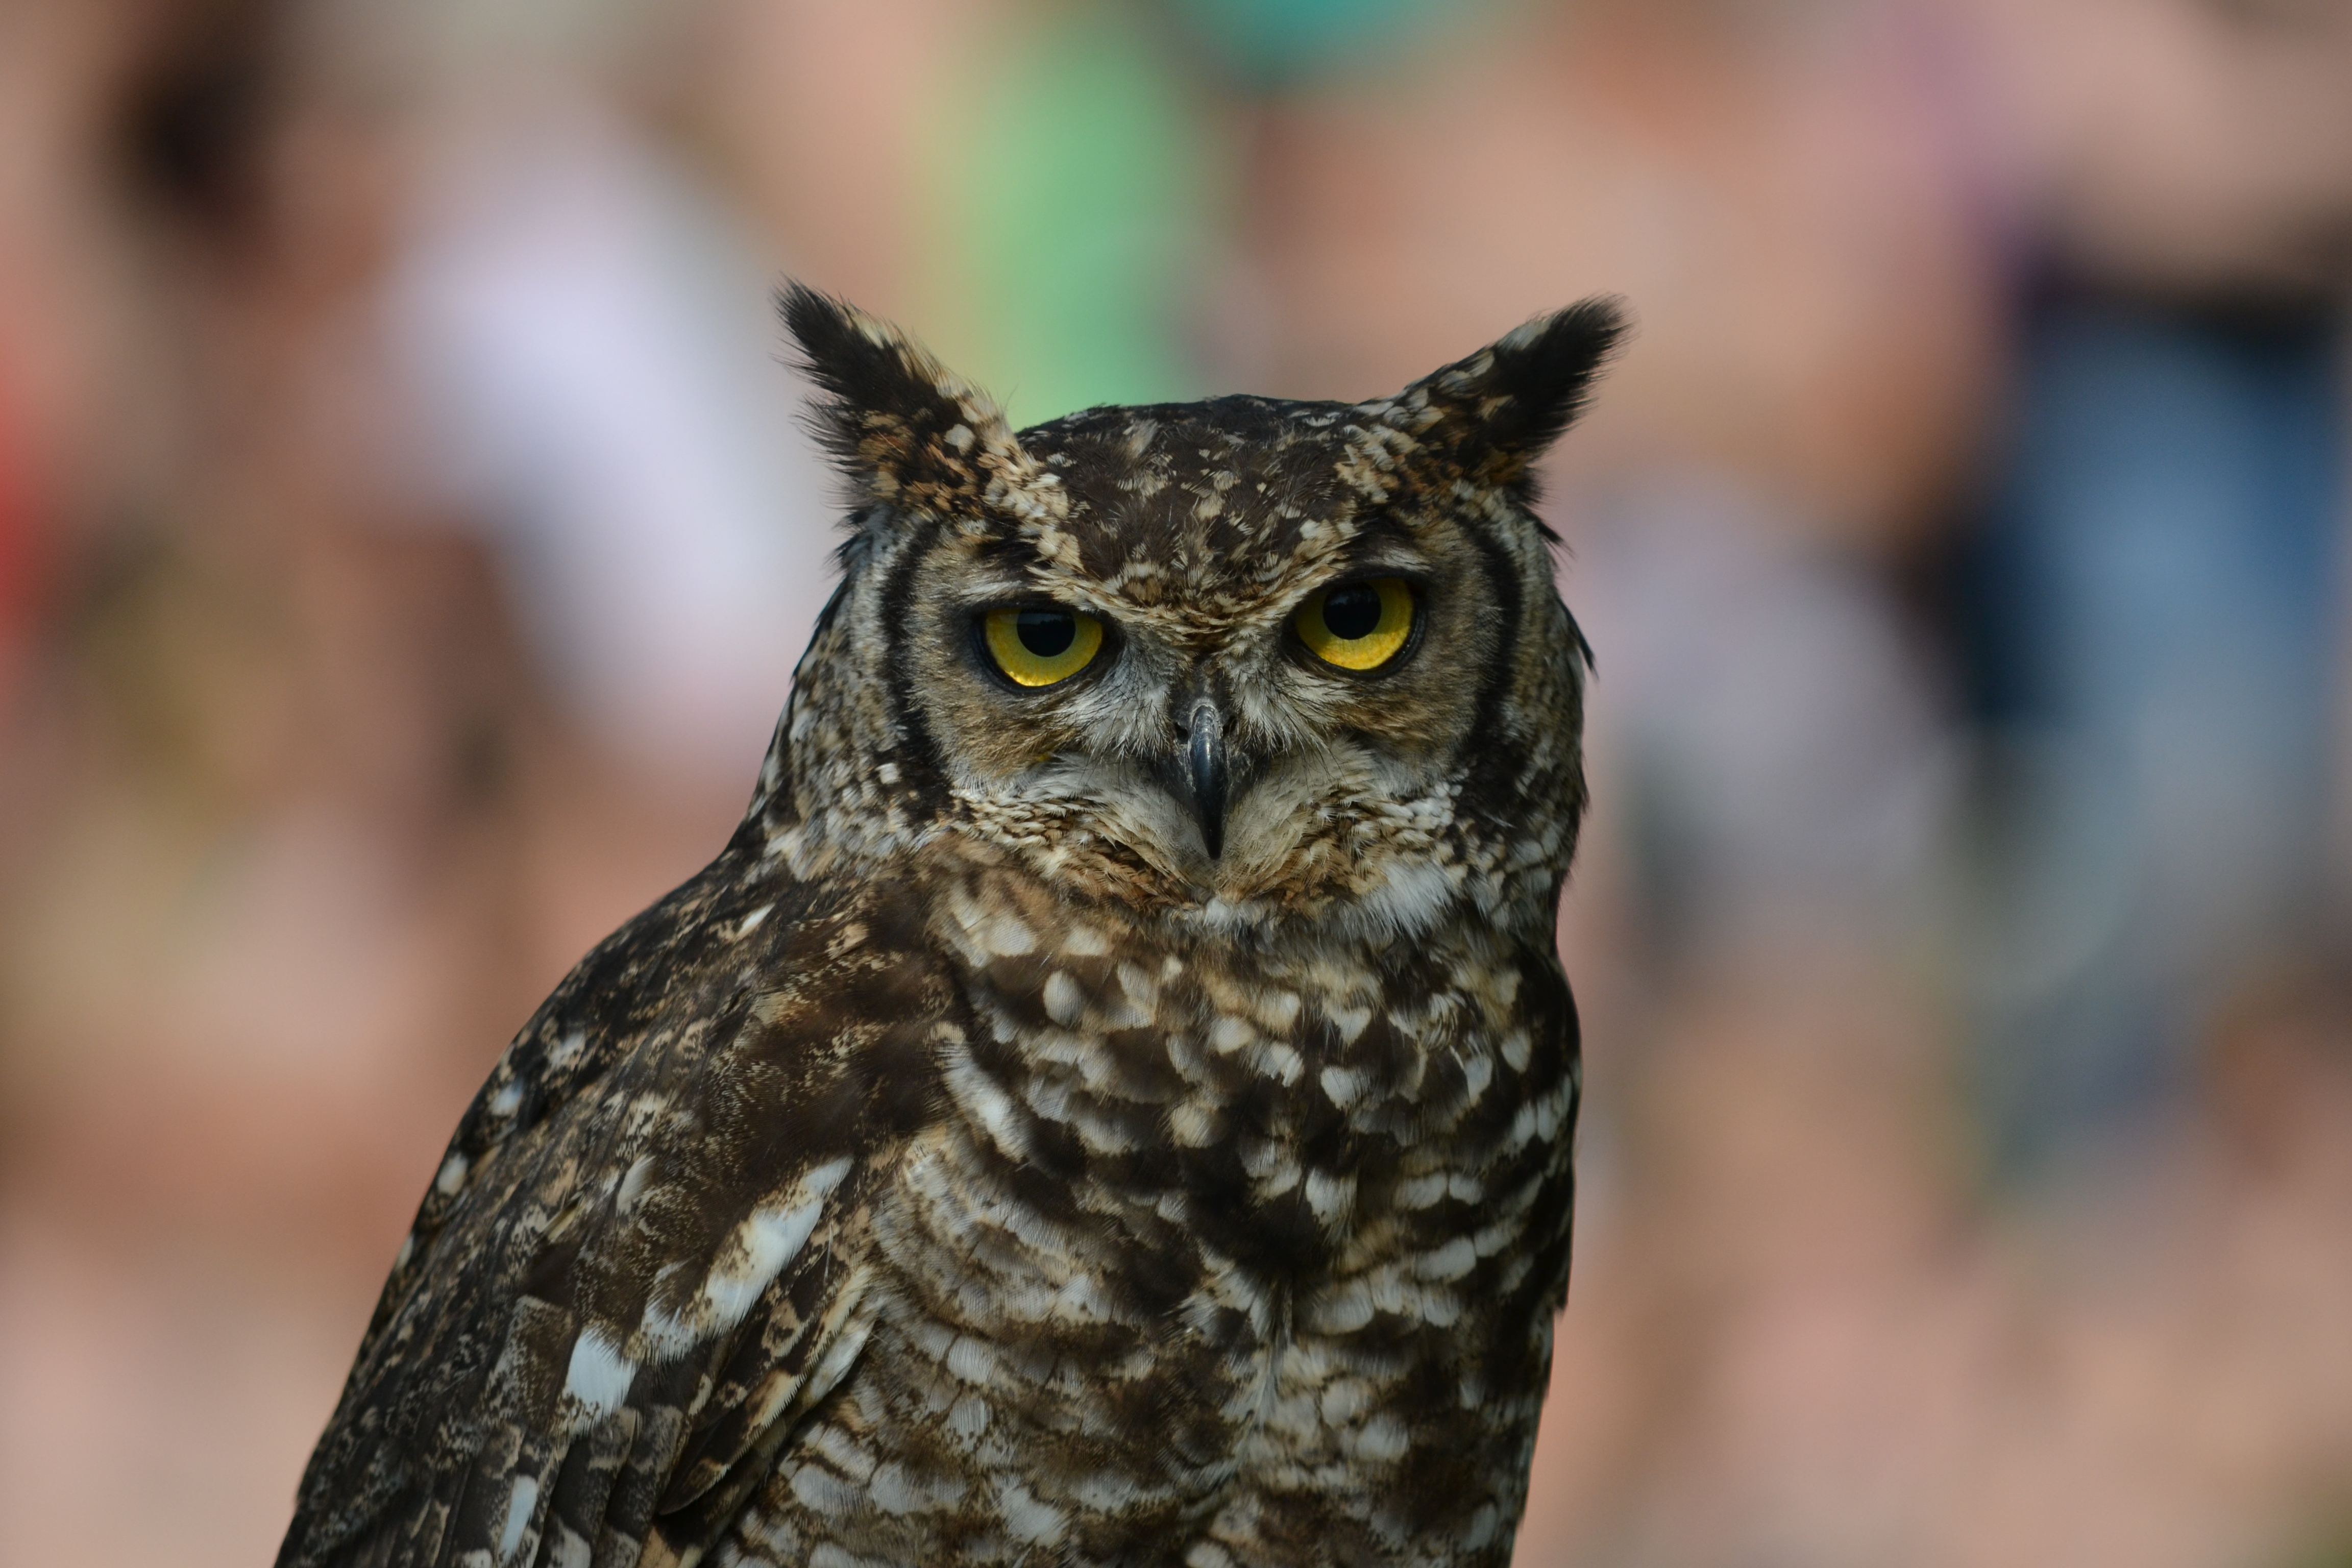 120841 download wallpaper Animals, Owl, Eagle Owl, Bird, Predator screensavers and pictures for free